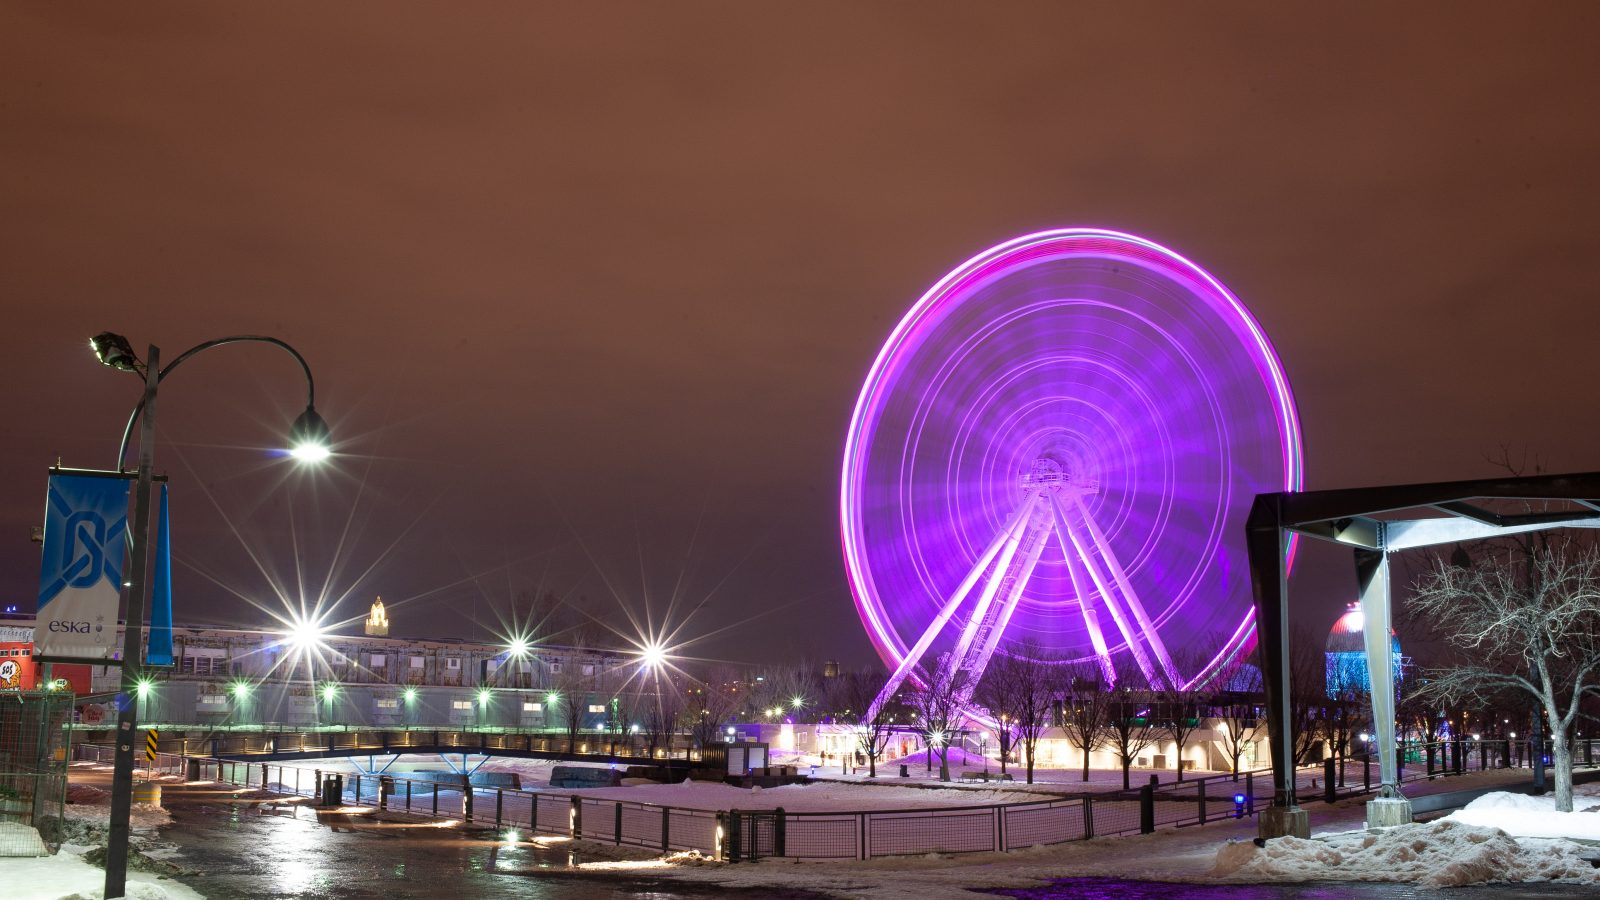 Motion blur shot of a ferris wheel lit up with purple lights and Montreal in background